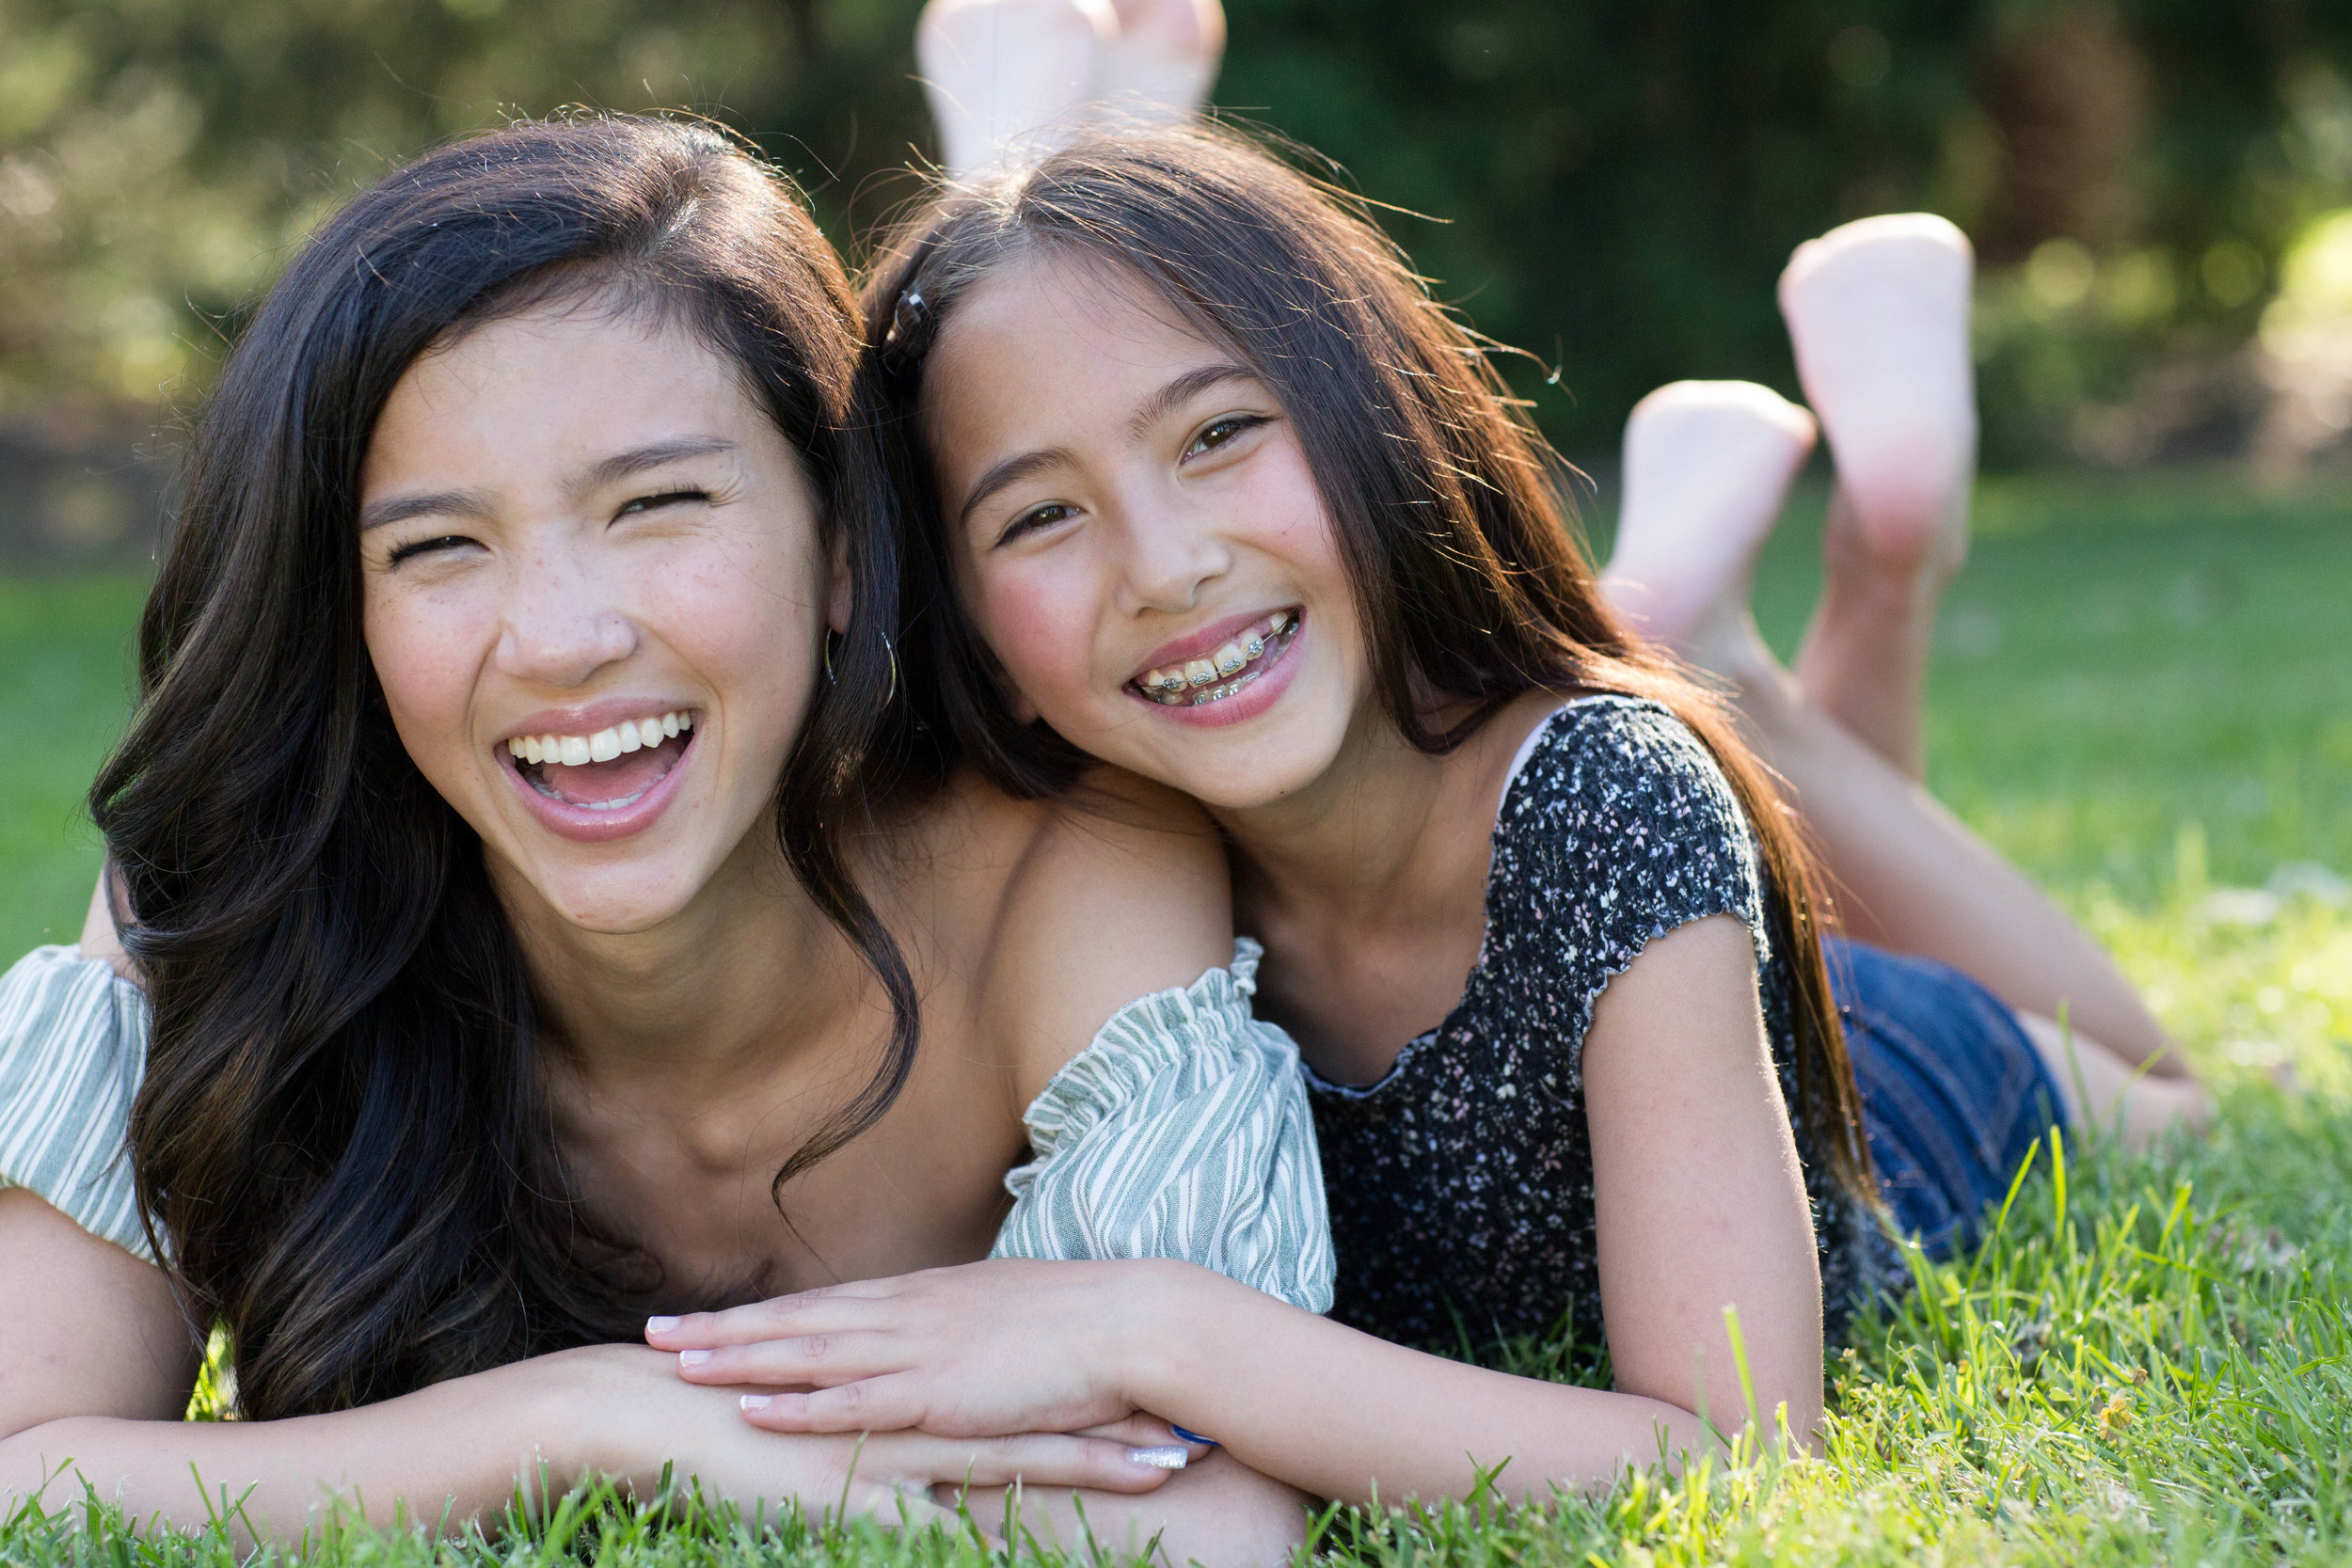 sisters laughing in grass